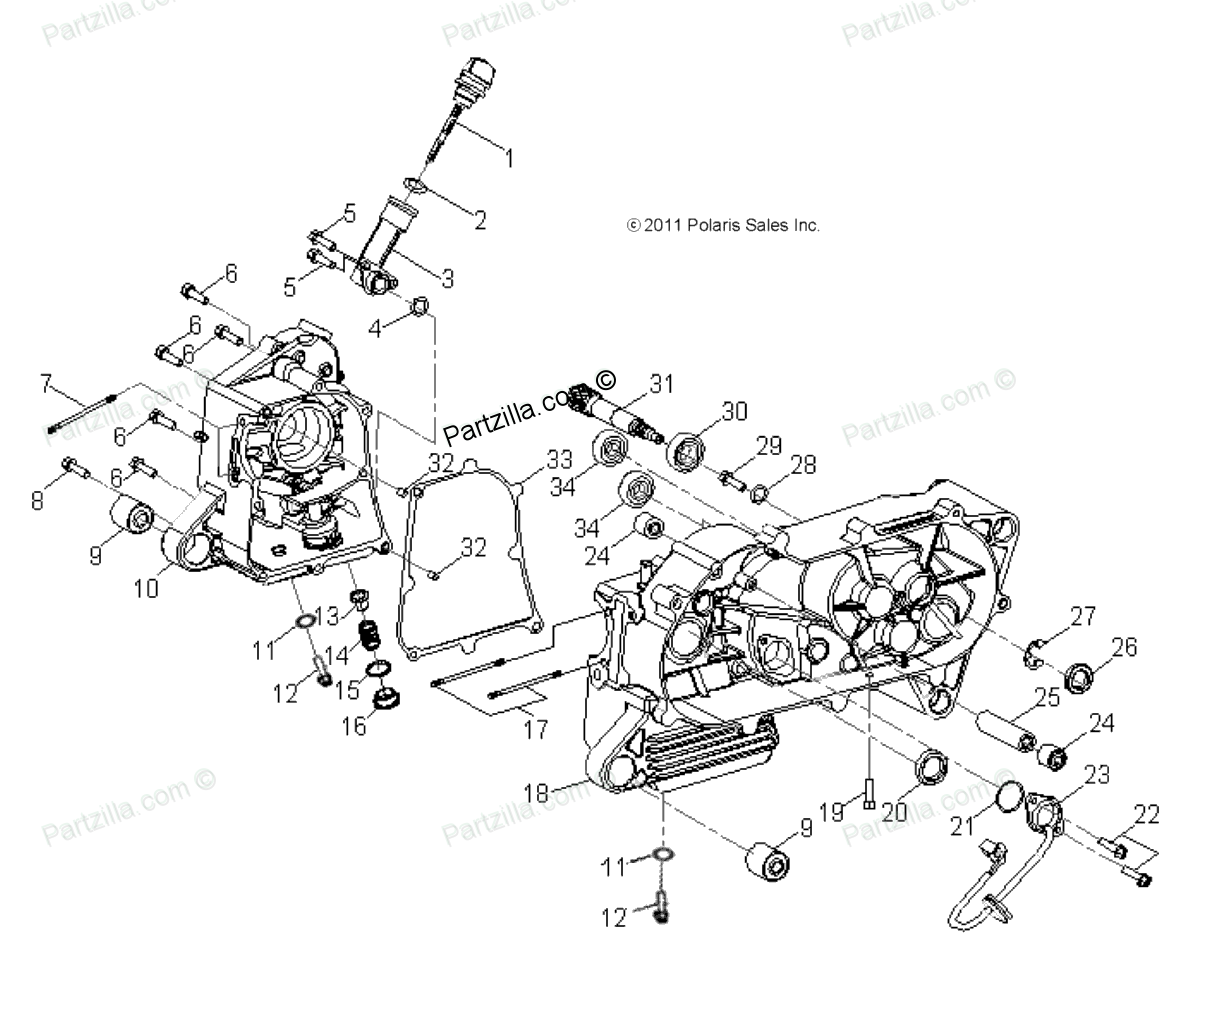 hight resolution of polaris outlaw 50 idle rev limit wiring diagram 7c05d14f52ca2365a2c6795311165983b8ac3e8d png